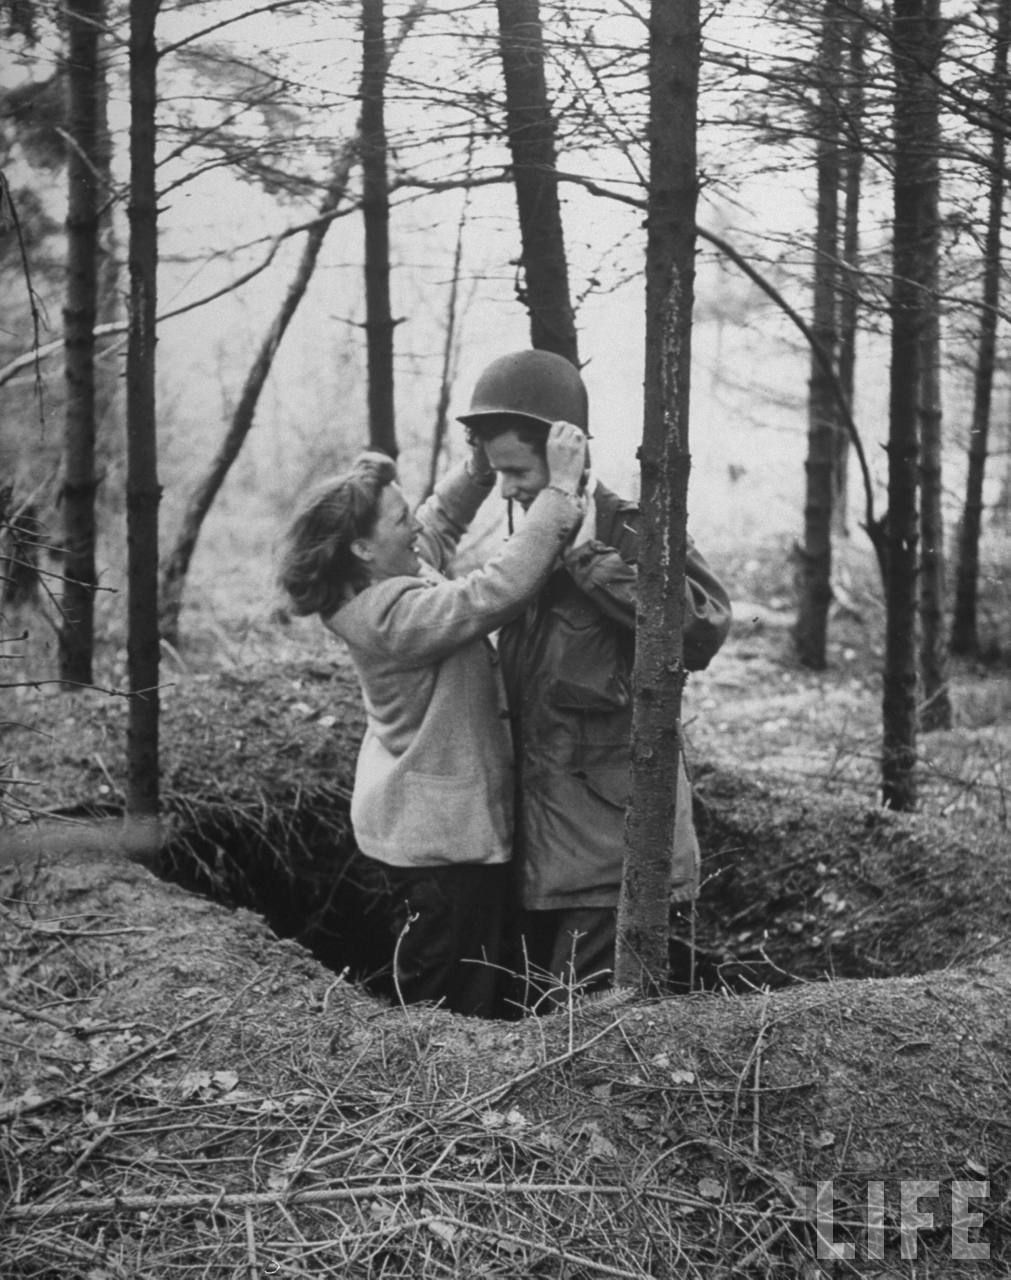 Ex-Sgt. Ernie Kreiling gets helmet put on his head by his laughing wife in the foxhole where he first heard an enemy shell during their vacation tour of battlefields were he fought during WWII in North country France - April 1947